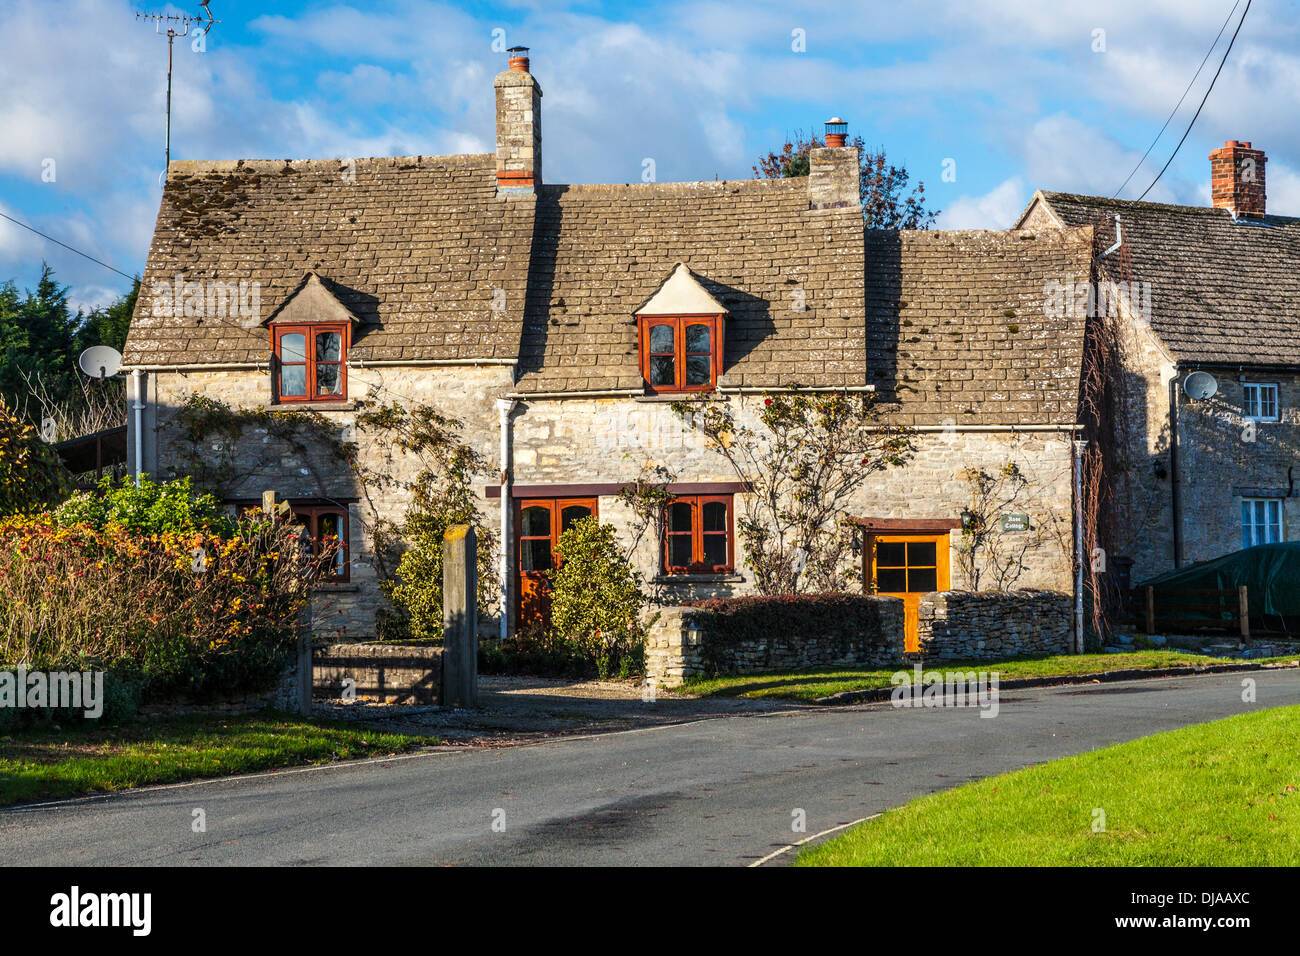 A pretty stone cottage in the Gloucestershire village of Dunfield. - Stock Image